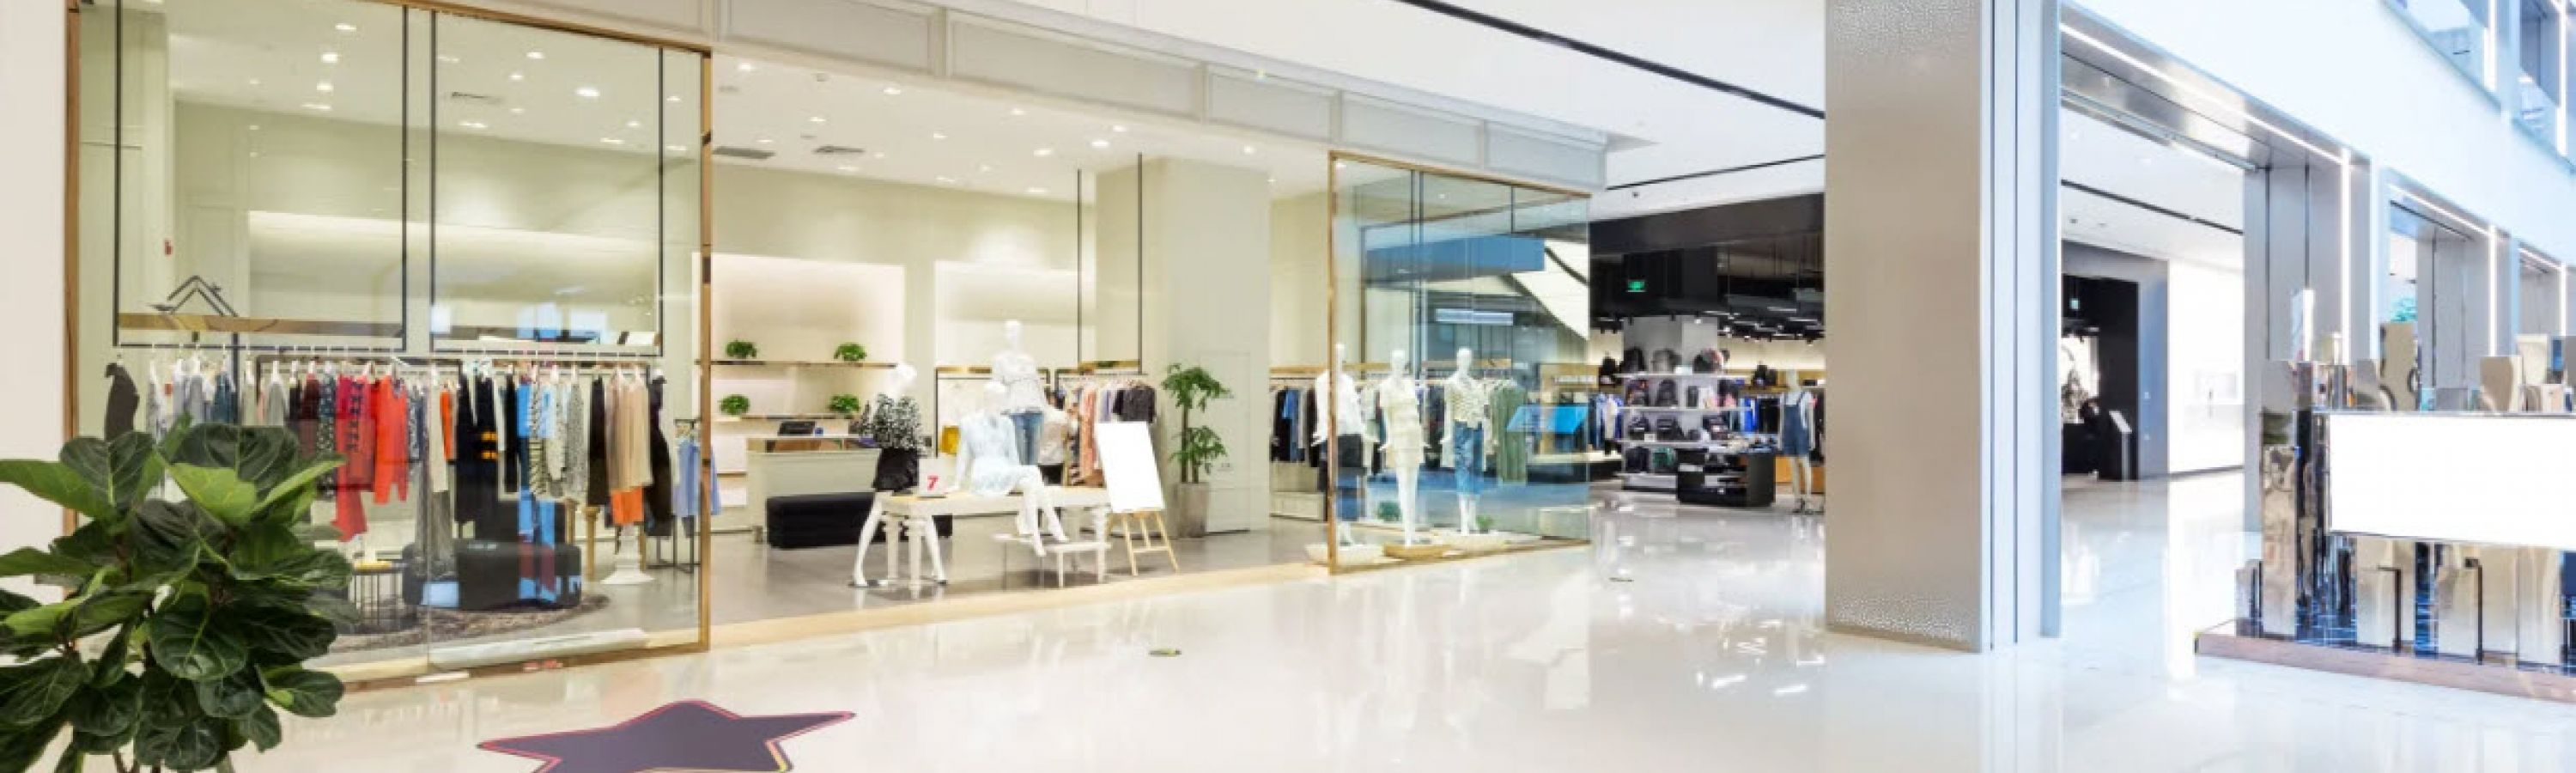 How Retail HR Leaders Are Navigating a New Normal During the COVID-19 Pandemic